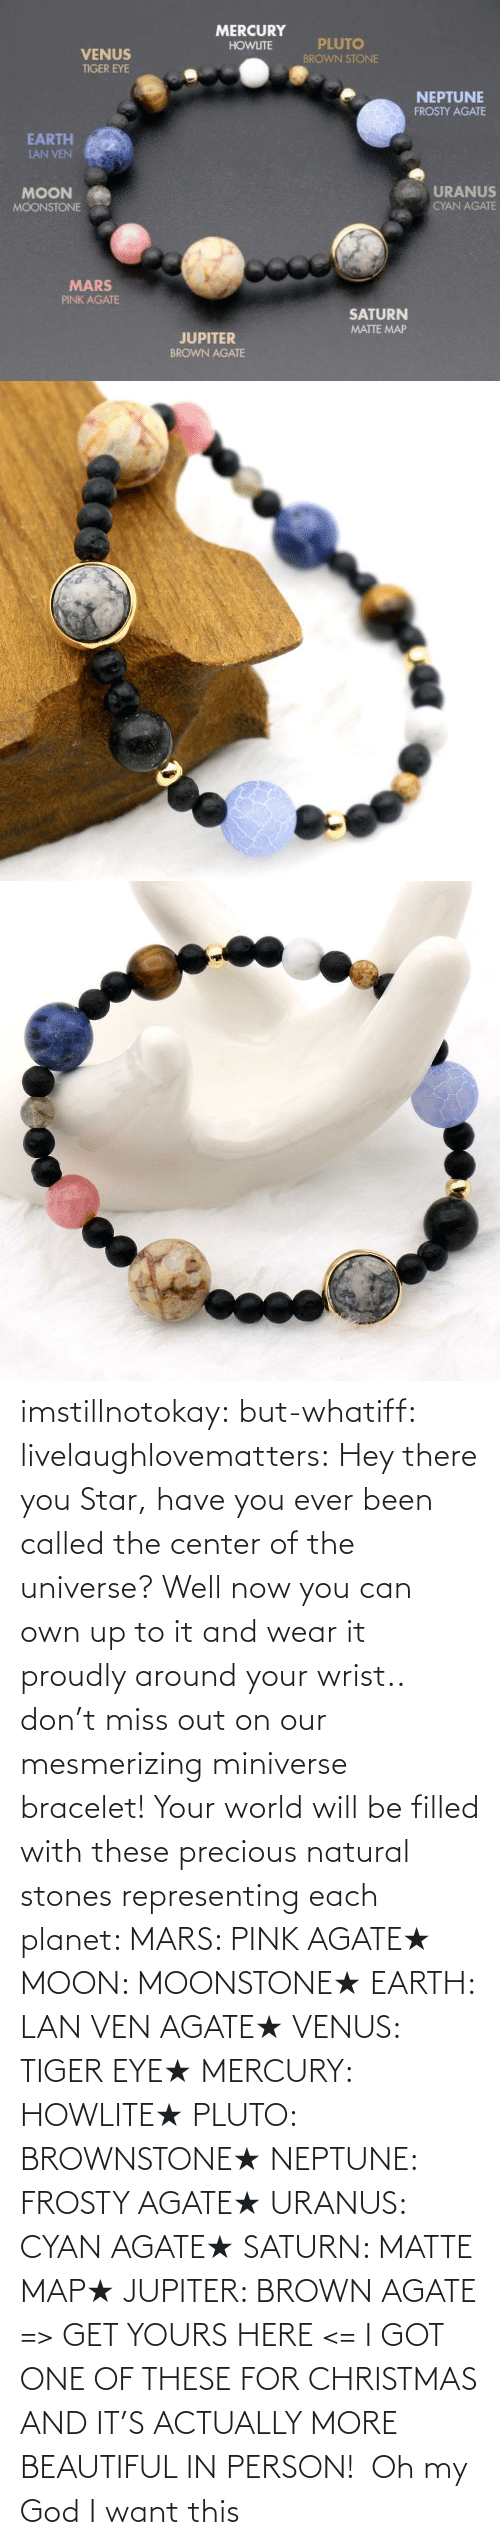 Precious: imstillnotokay:  but-whatiff: livelaughlovematters:  Hey there you Star, have you ever been called the center of the universe? Well now you can own up to it and wear it proudly around your wrist.. don't miss out on our mesmerizing miniverse bracelet! Your world will be filled with these precious natural stones representing each planet:  MARS: PINK AGATE★ MOON: MOONSTONE★ EARTH: LAN VEN AGATE★ VENUS: TIGER EYE★ MERCURY: HOWLITE★ PLUTO: BROWNSTONE★ NEPTUNE: FROSTY AGATE★ URANUS: CYAN AGATE★ SATURN: MATTE MAP★ JUPITER: BROWN AGATE => GET YOURS HERE <=  I GOT ONE OF THESE FOR CHRISTMAS AND IT'S ACTUALLY MORE BEAUTIFUL IN PERSON!     Oh my God I want this